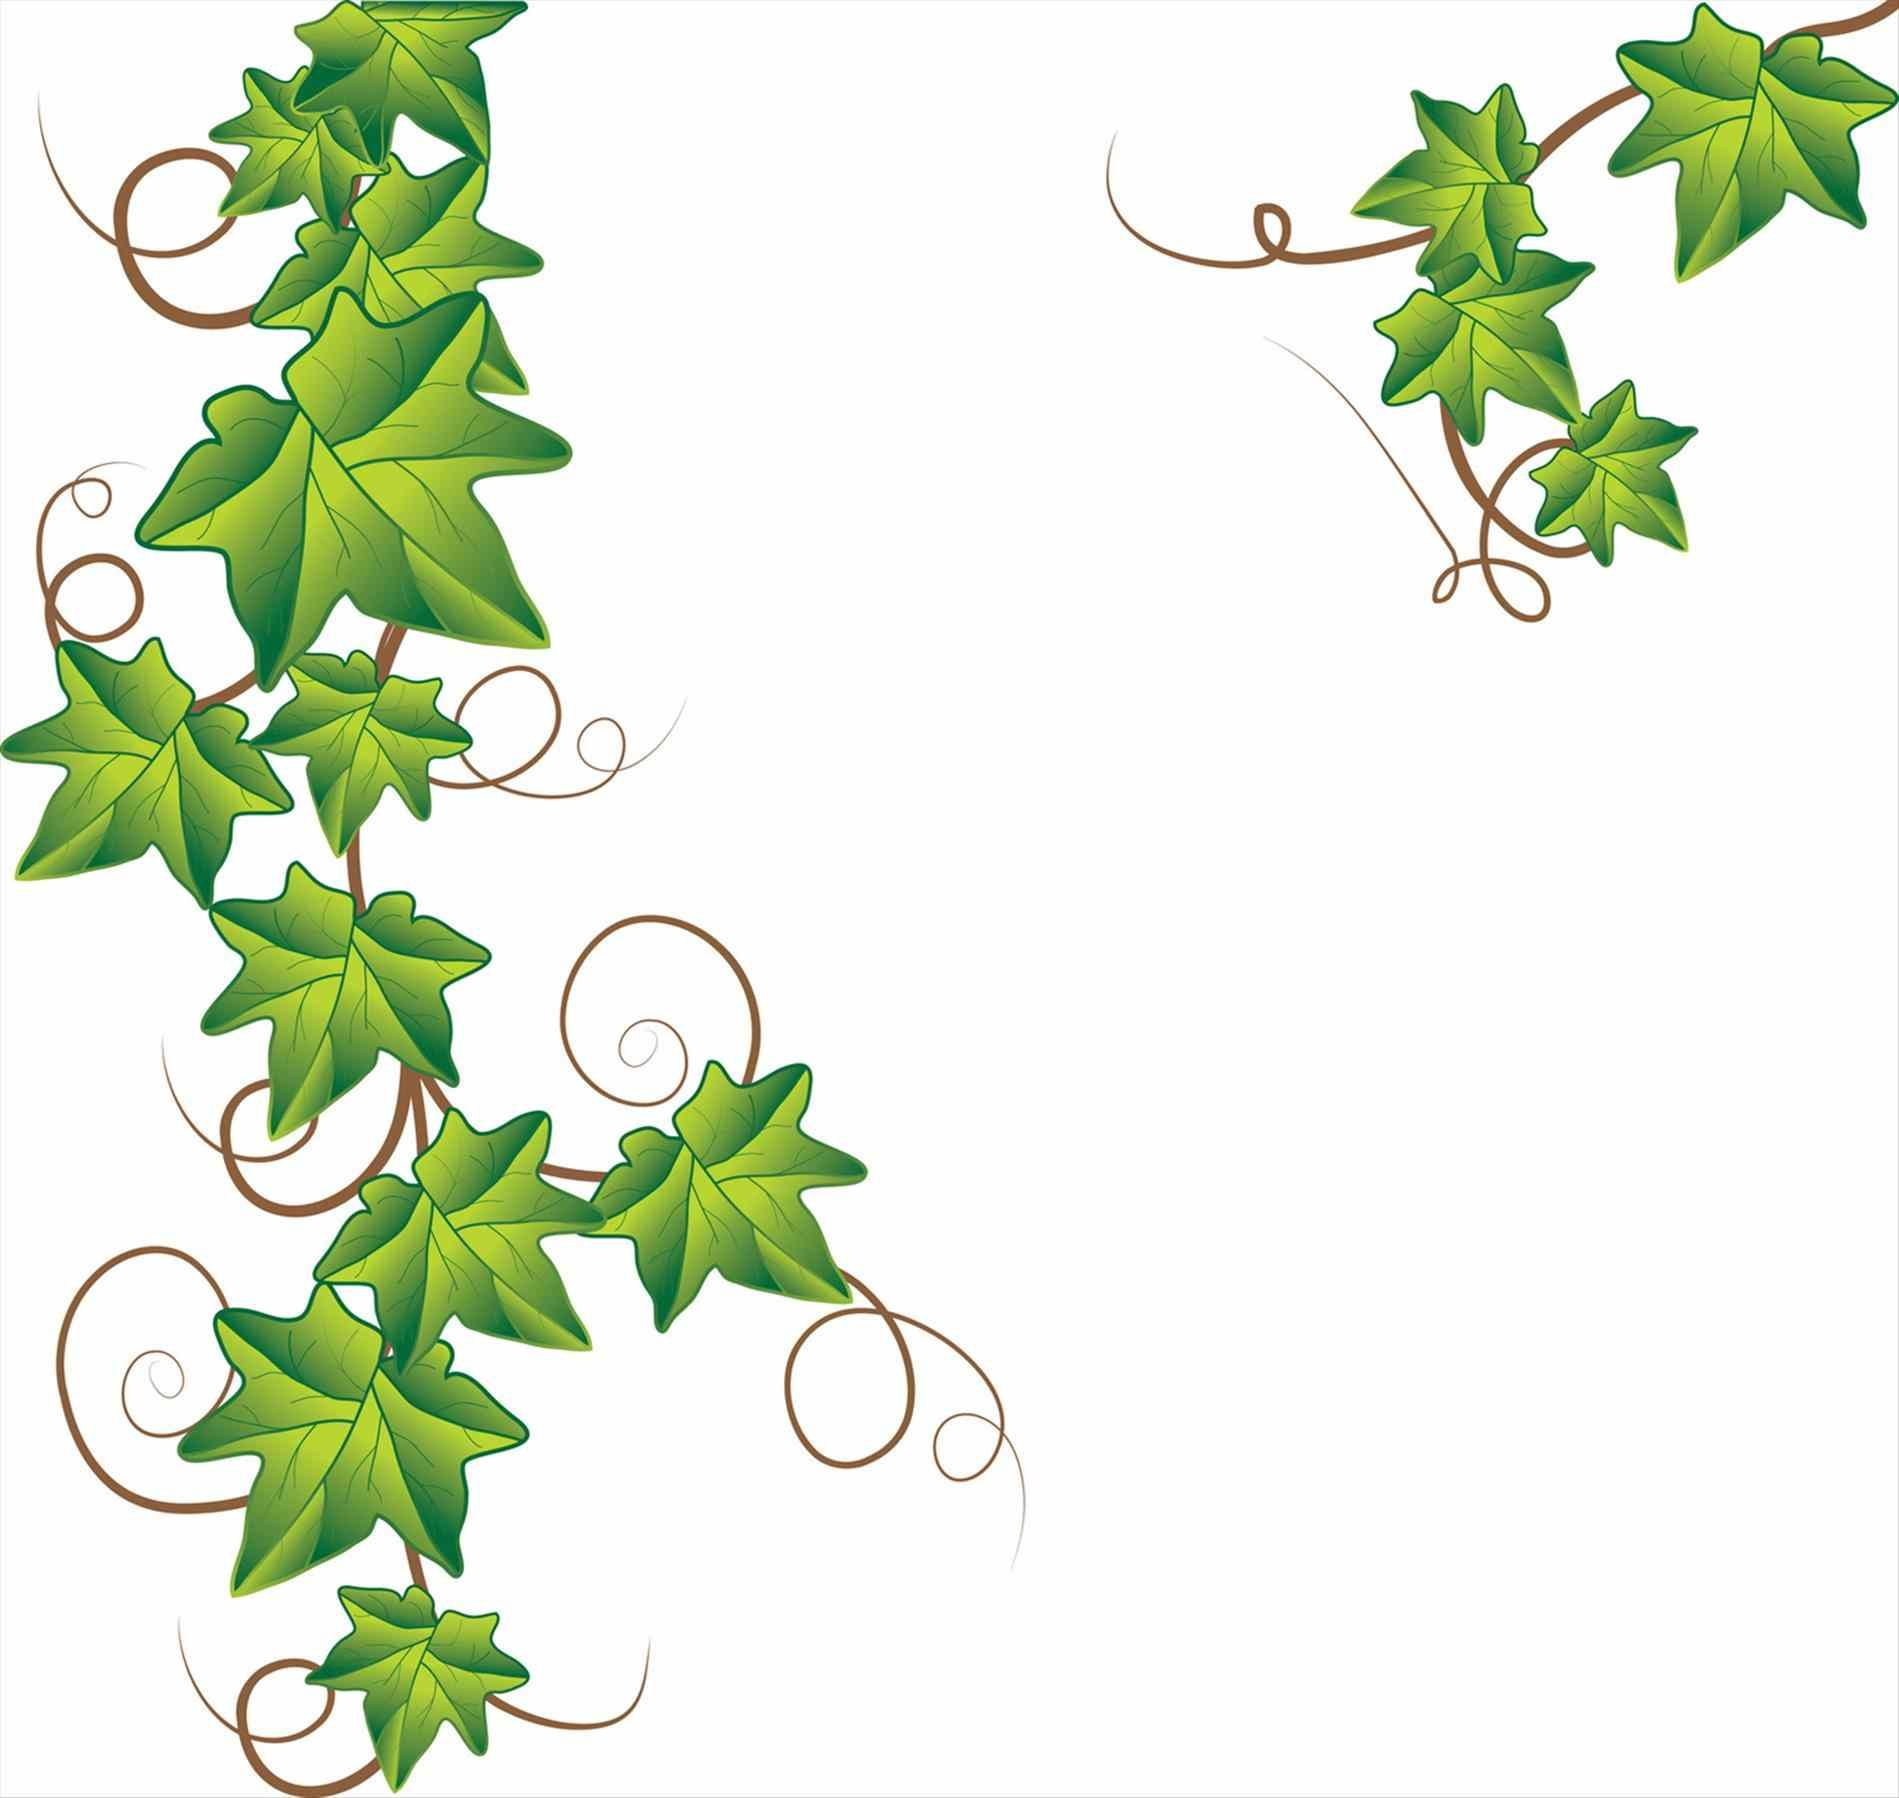 Ivy poison ivy plant drawing plant clip art clipart collection.